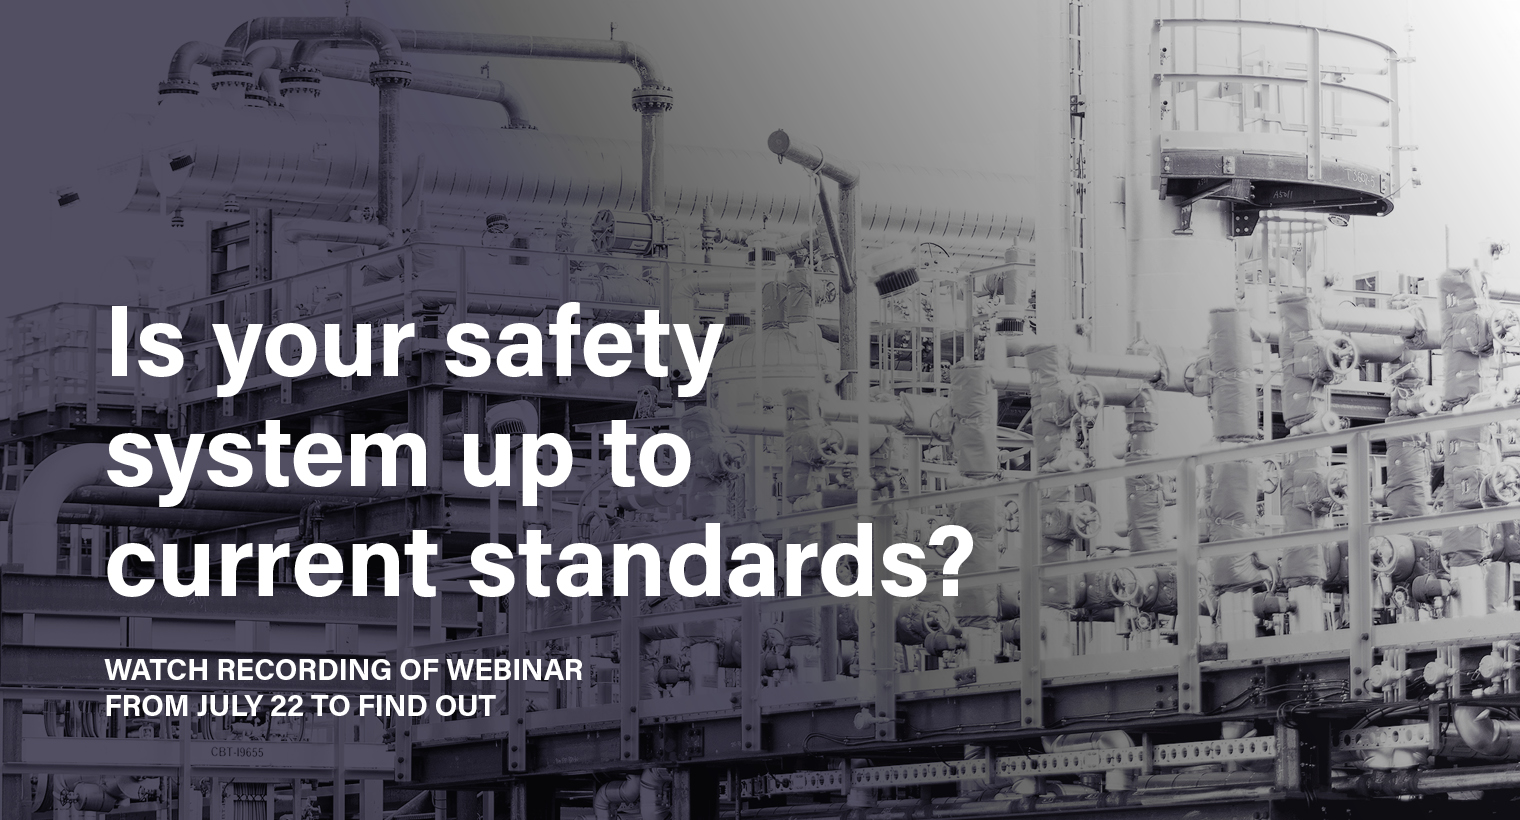 Is your safety system up to current standards?